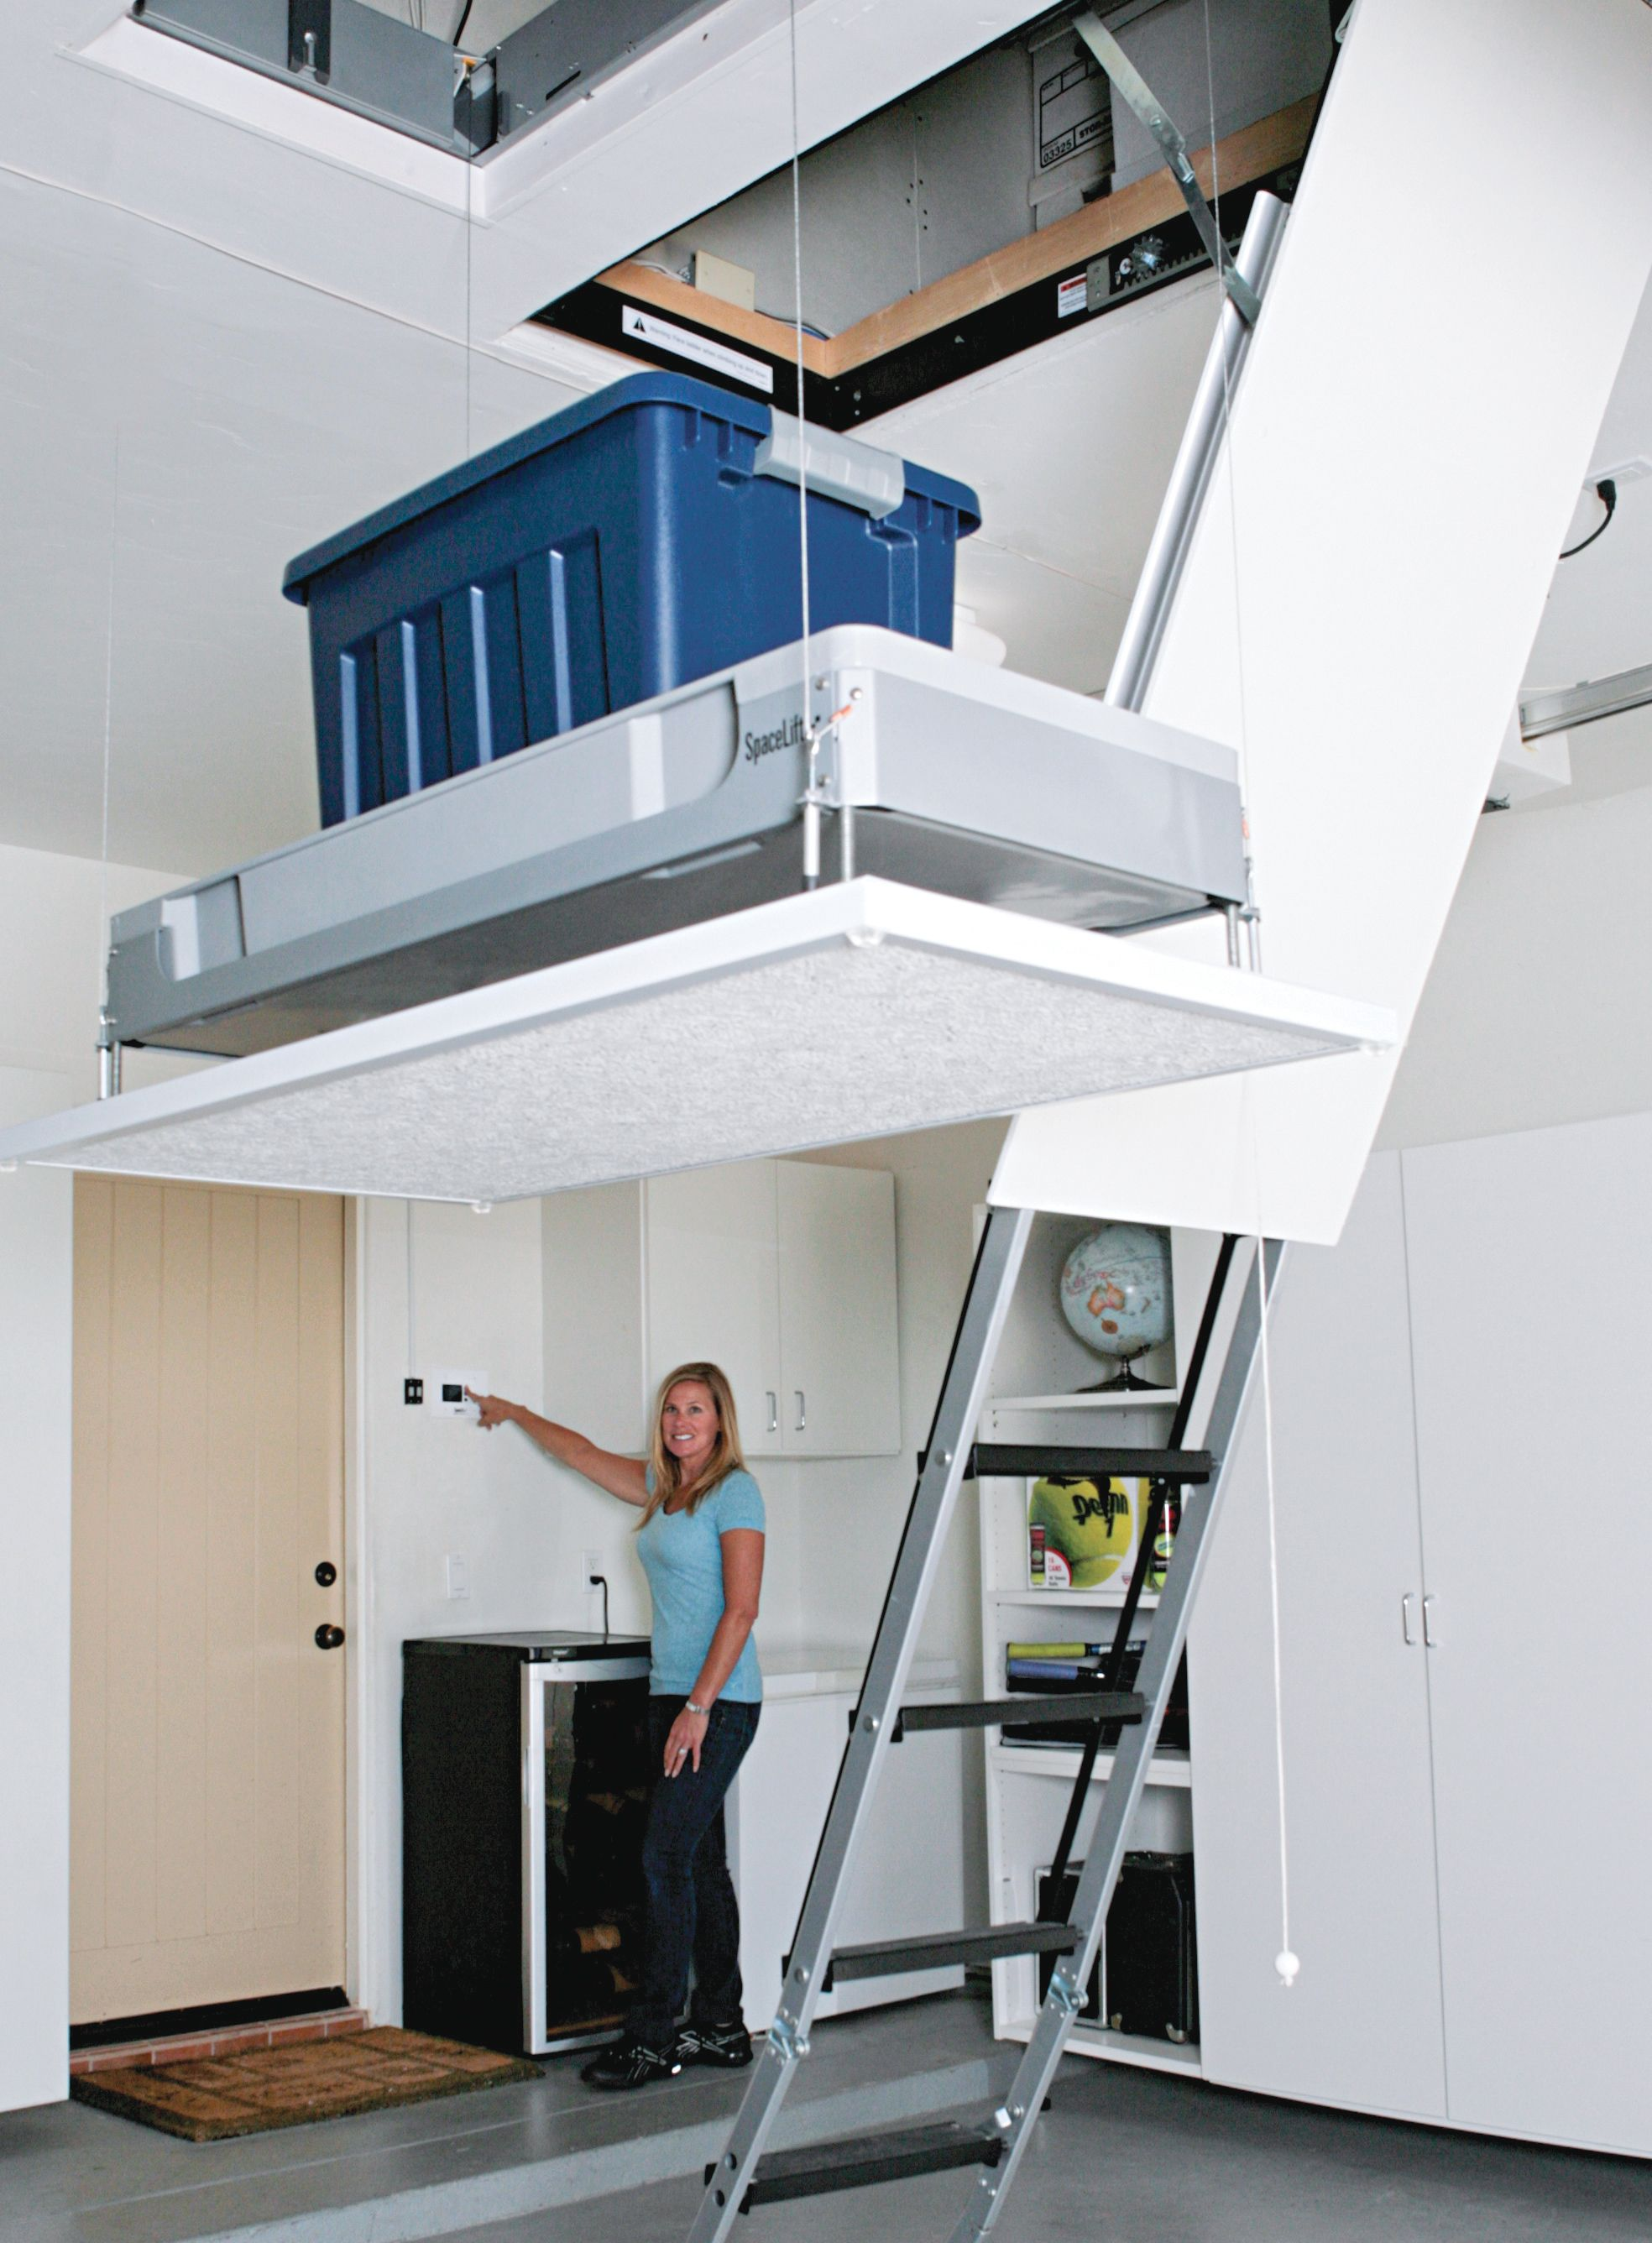 Spacelift 5000 for lifting things from the garage to the attic spacelift 5000 for lifting things from the garage to the attic 187500 from dealer if solutioingenieria Images